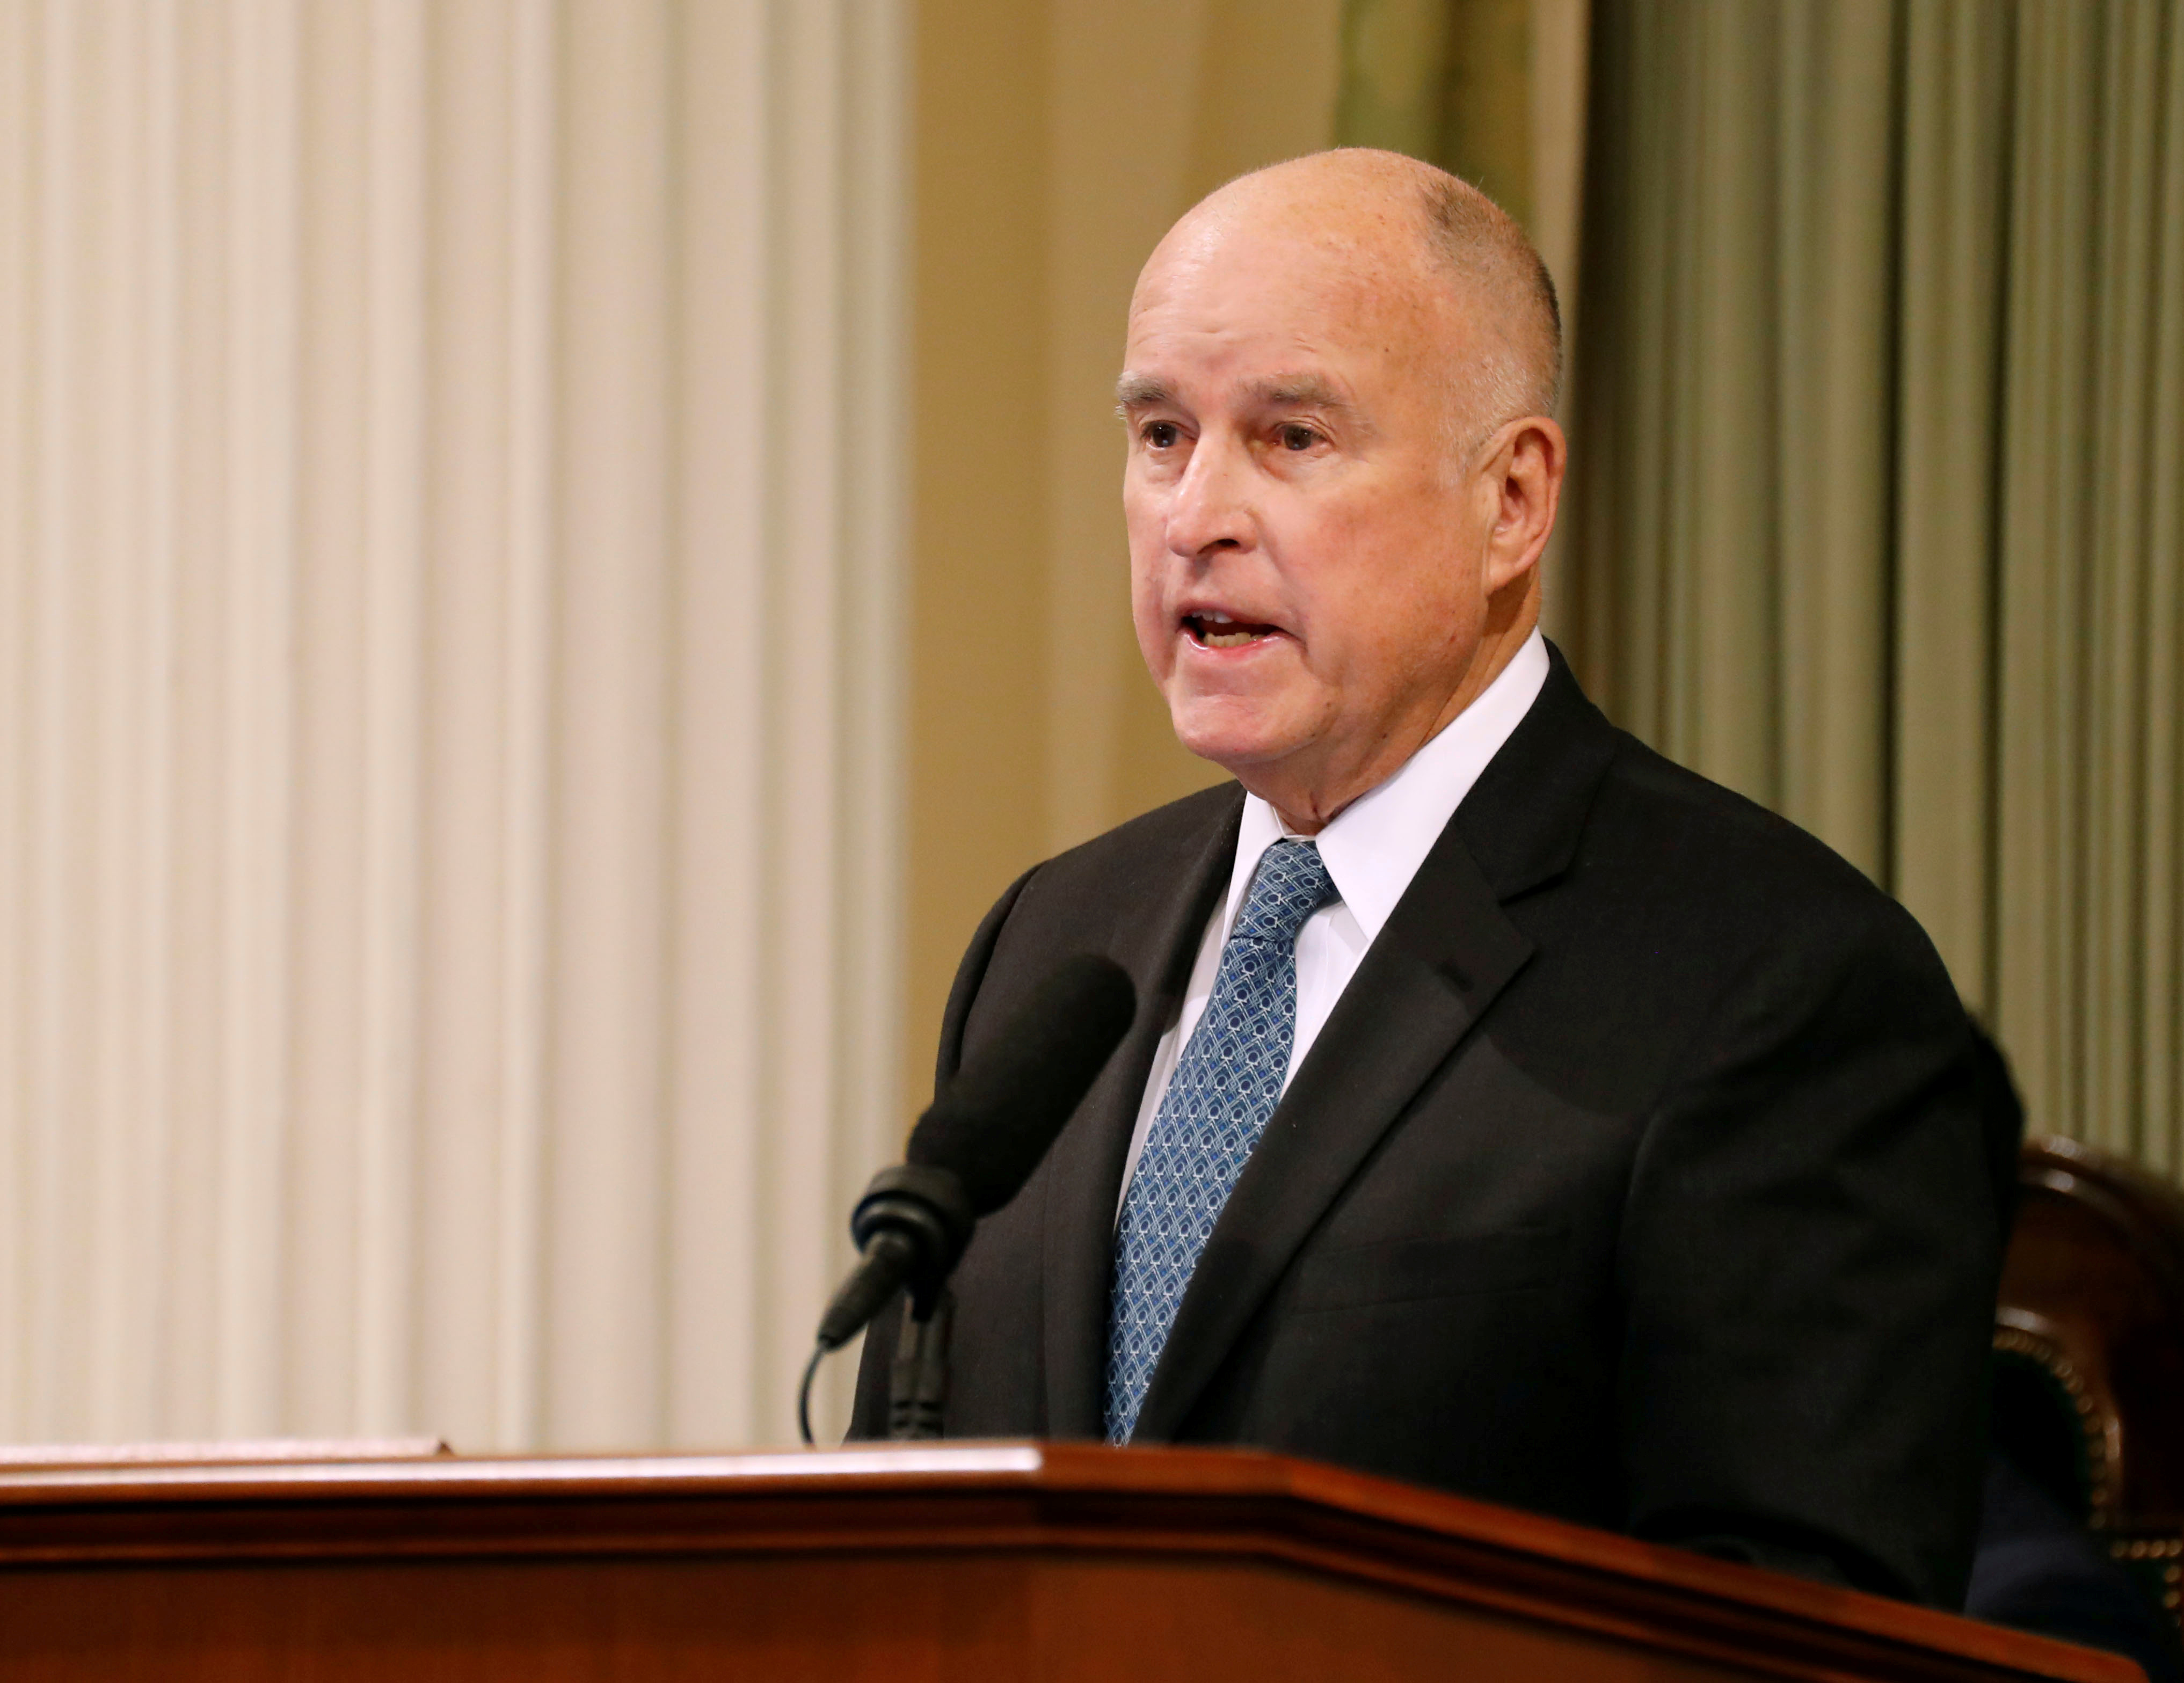 Former Governor Jerry Brown stands at a podium.